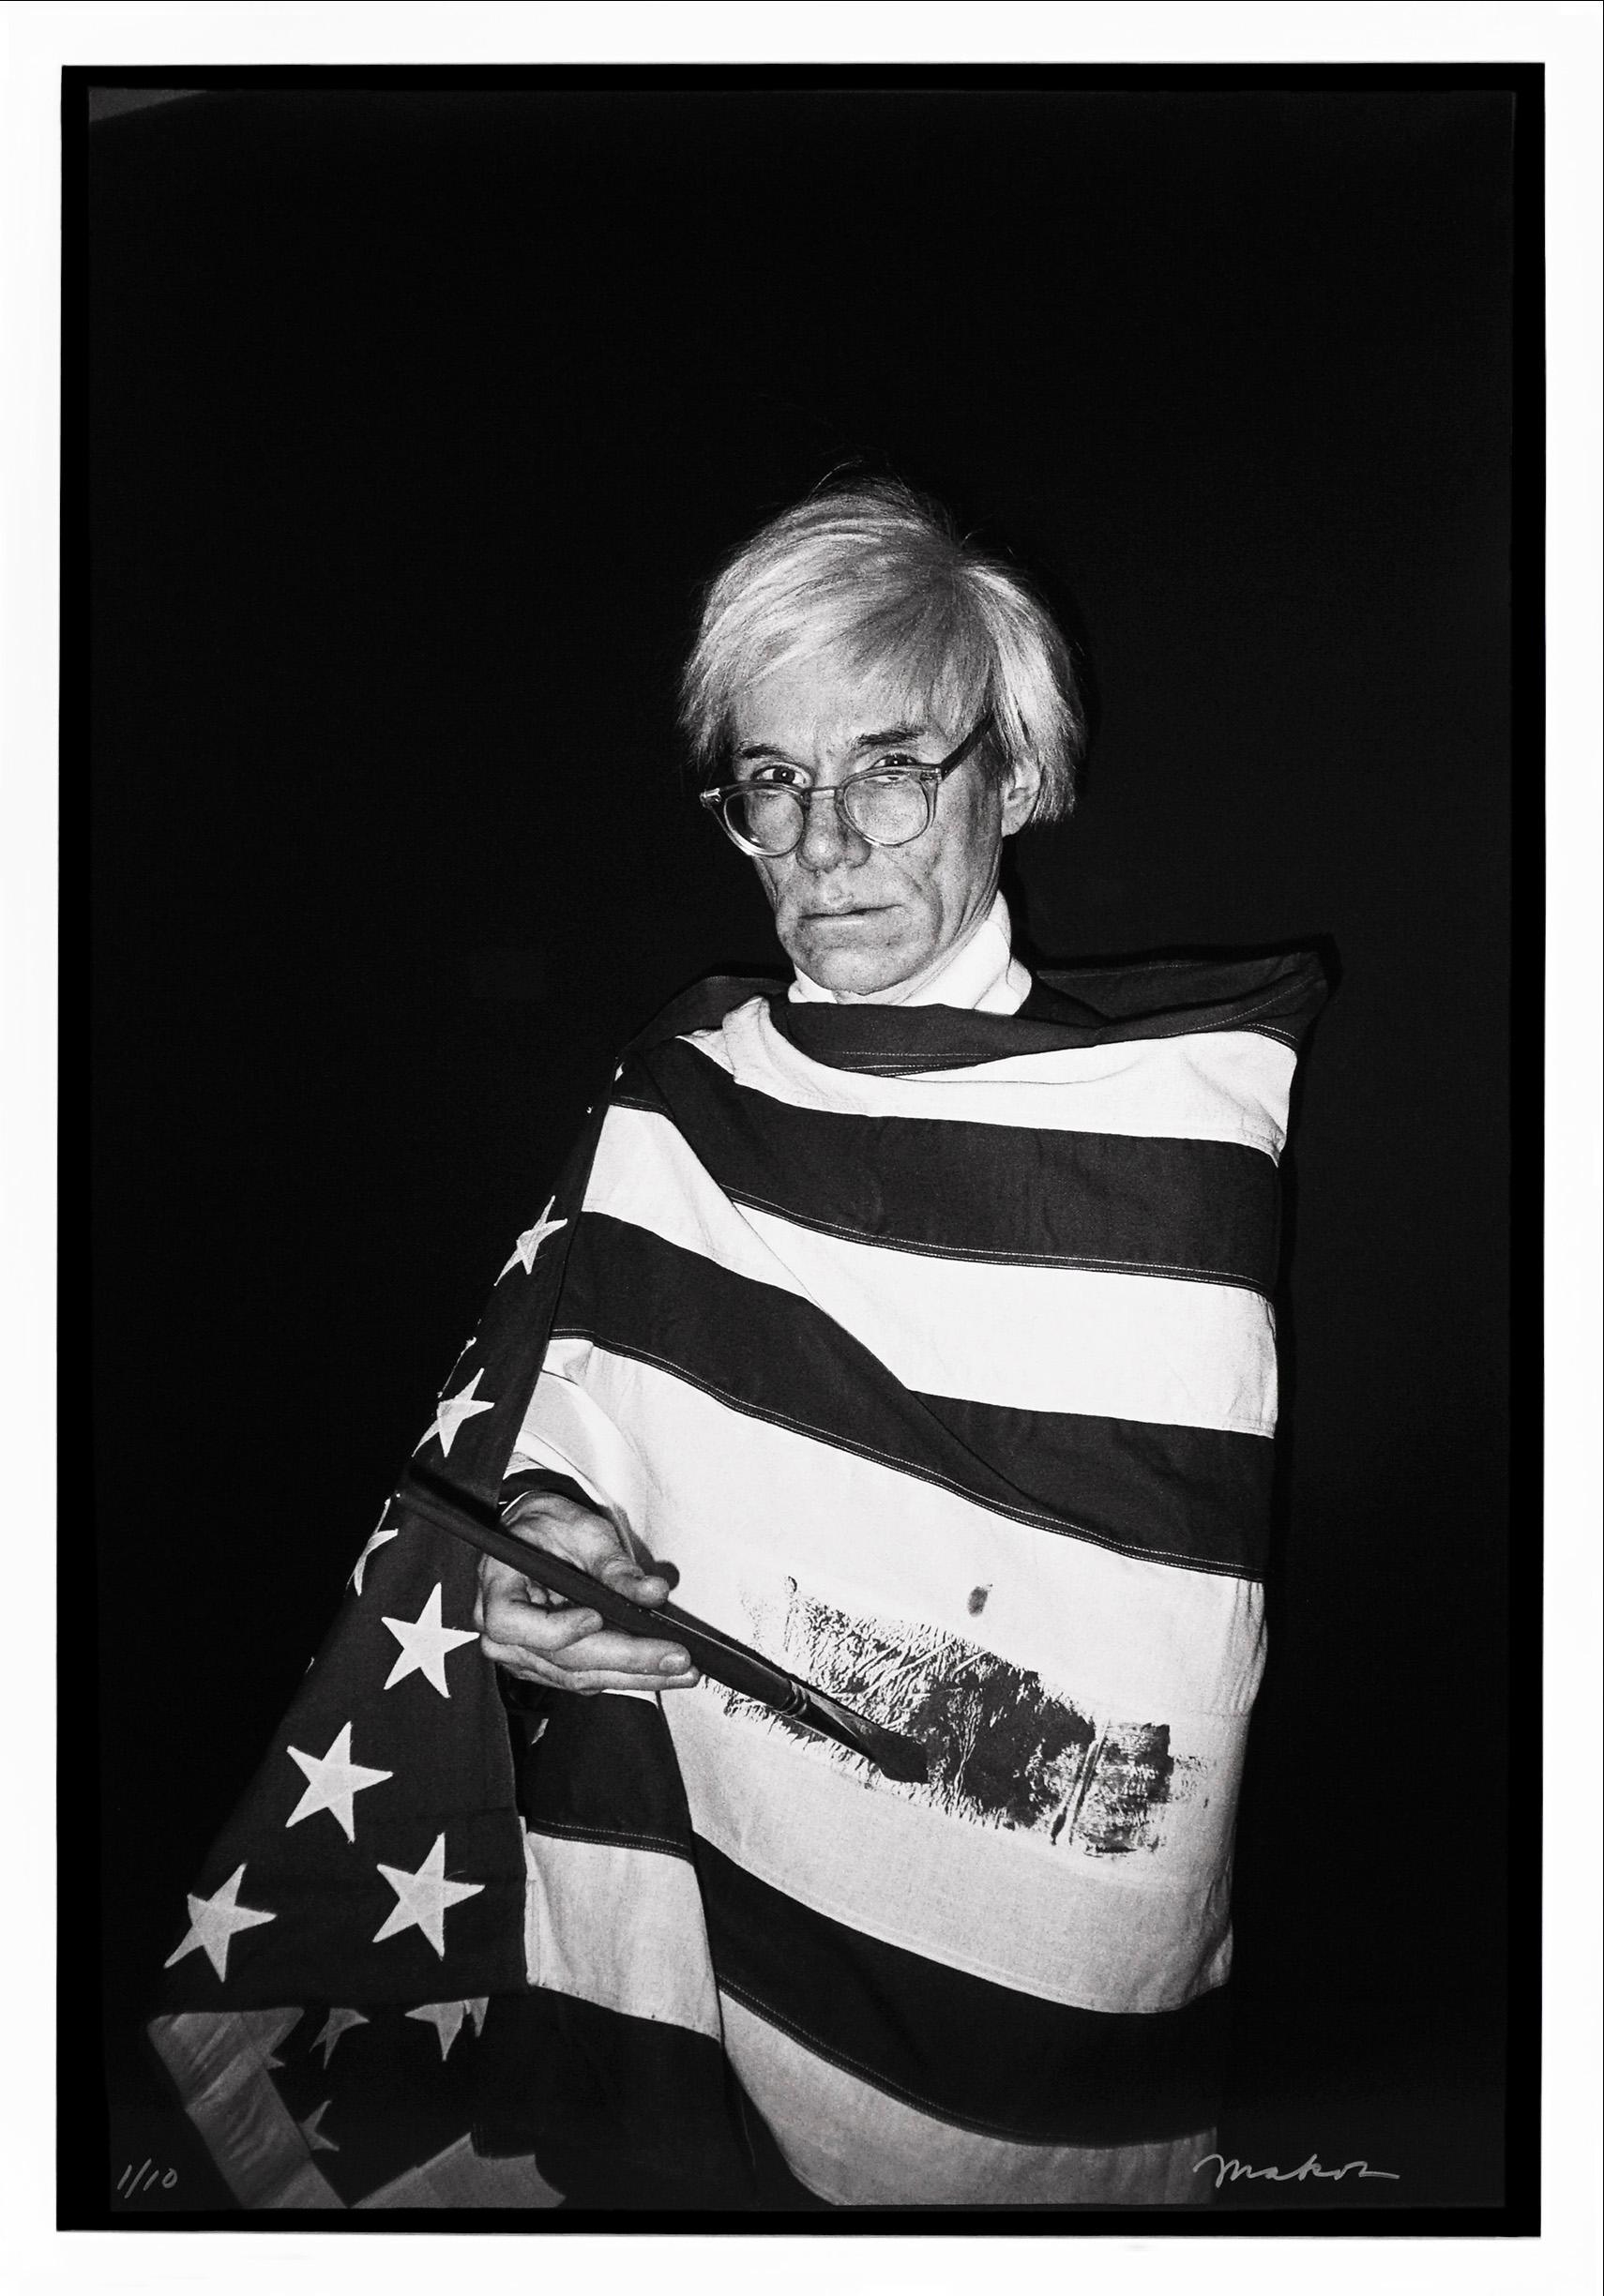 Andy Warhol American Flag, Archival Pigment Photographic Print, 2020